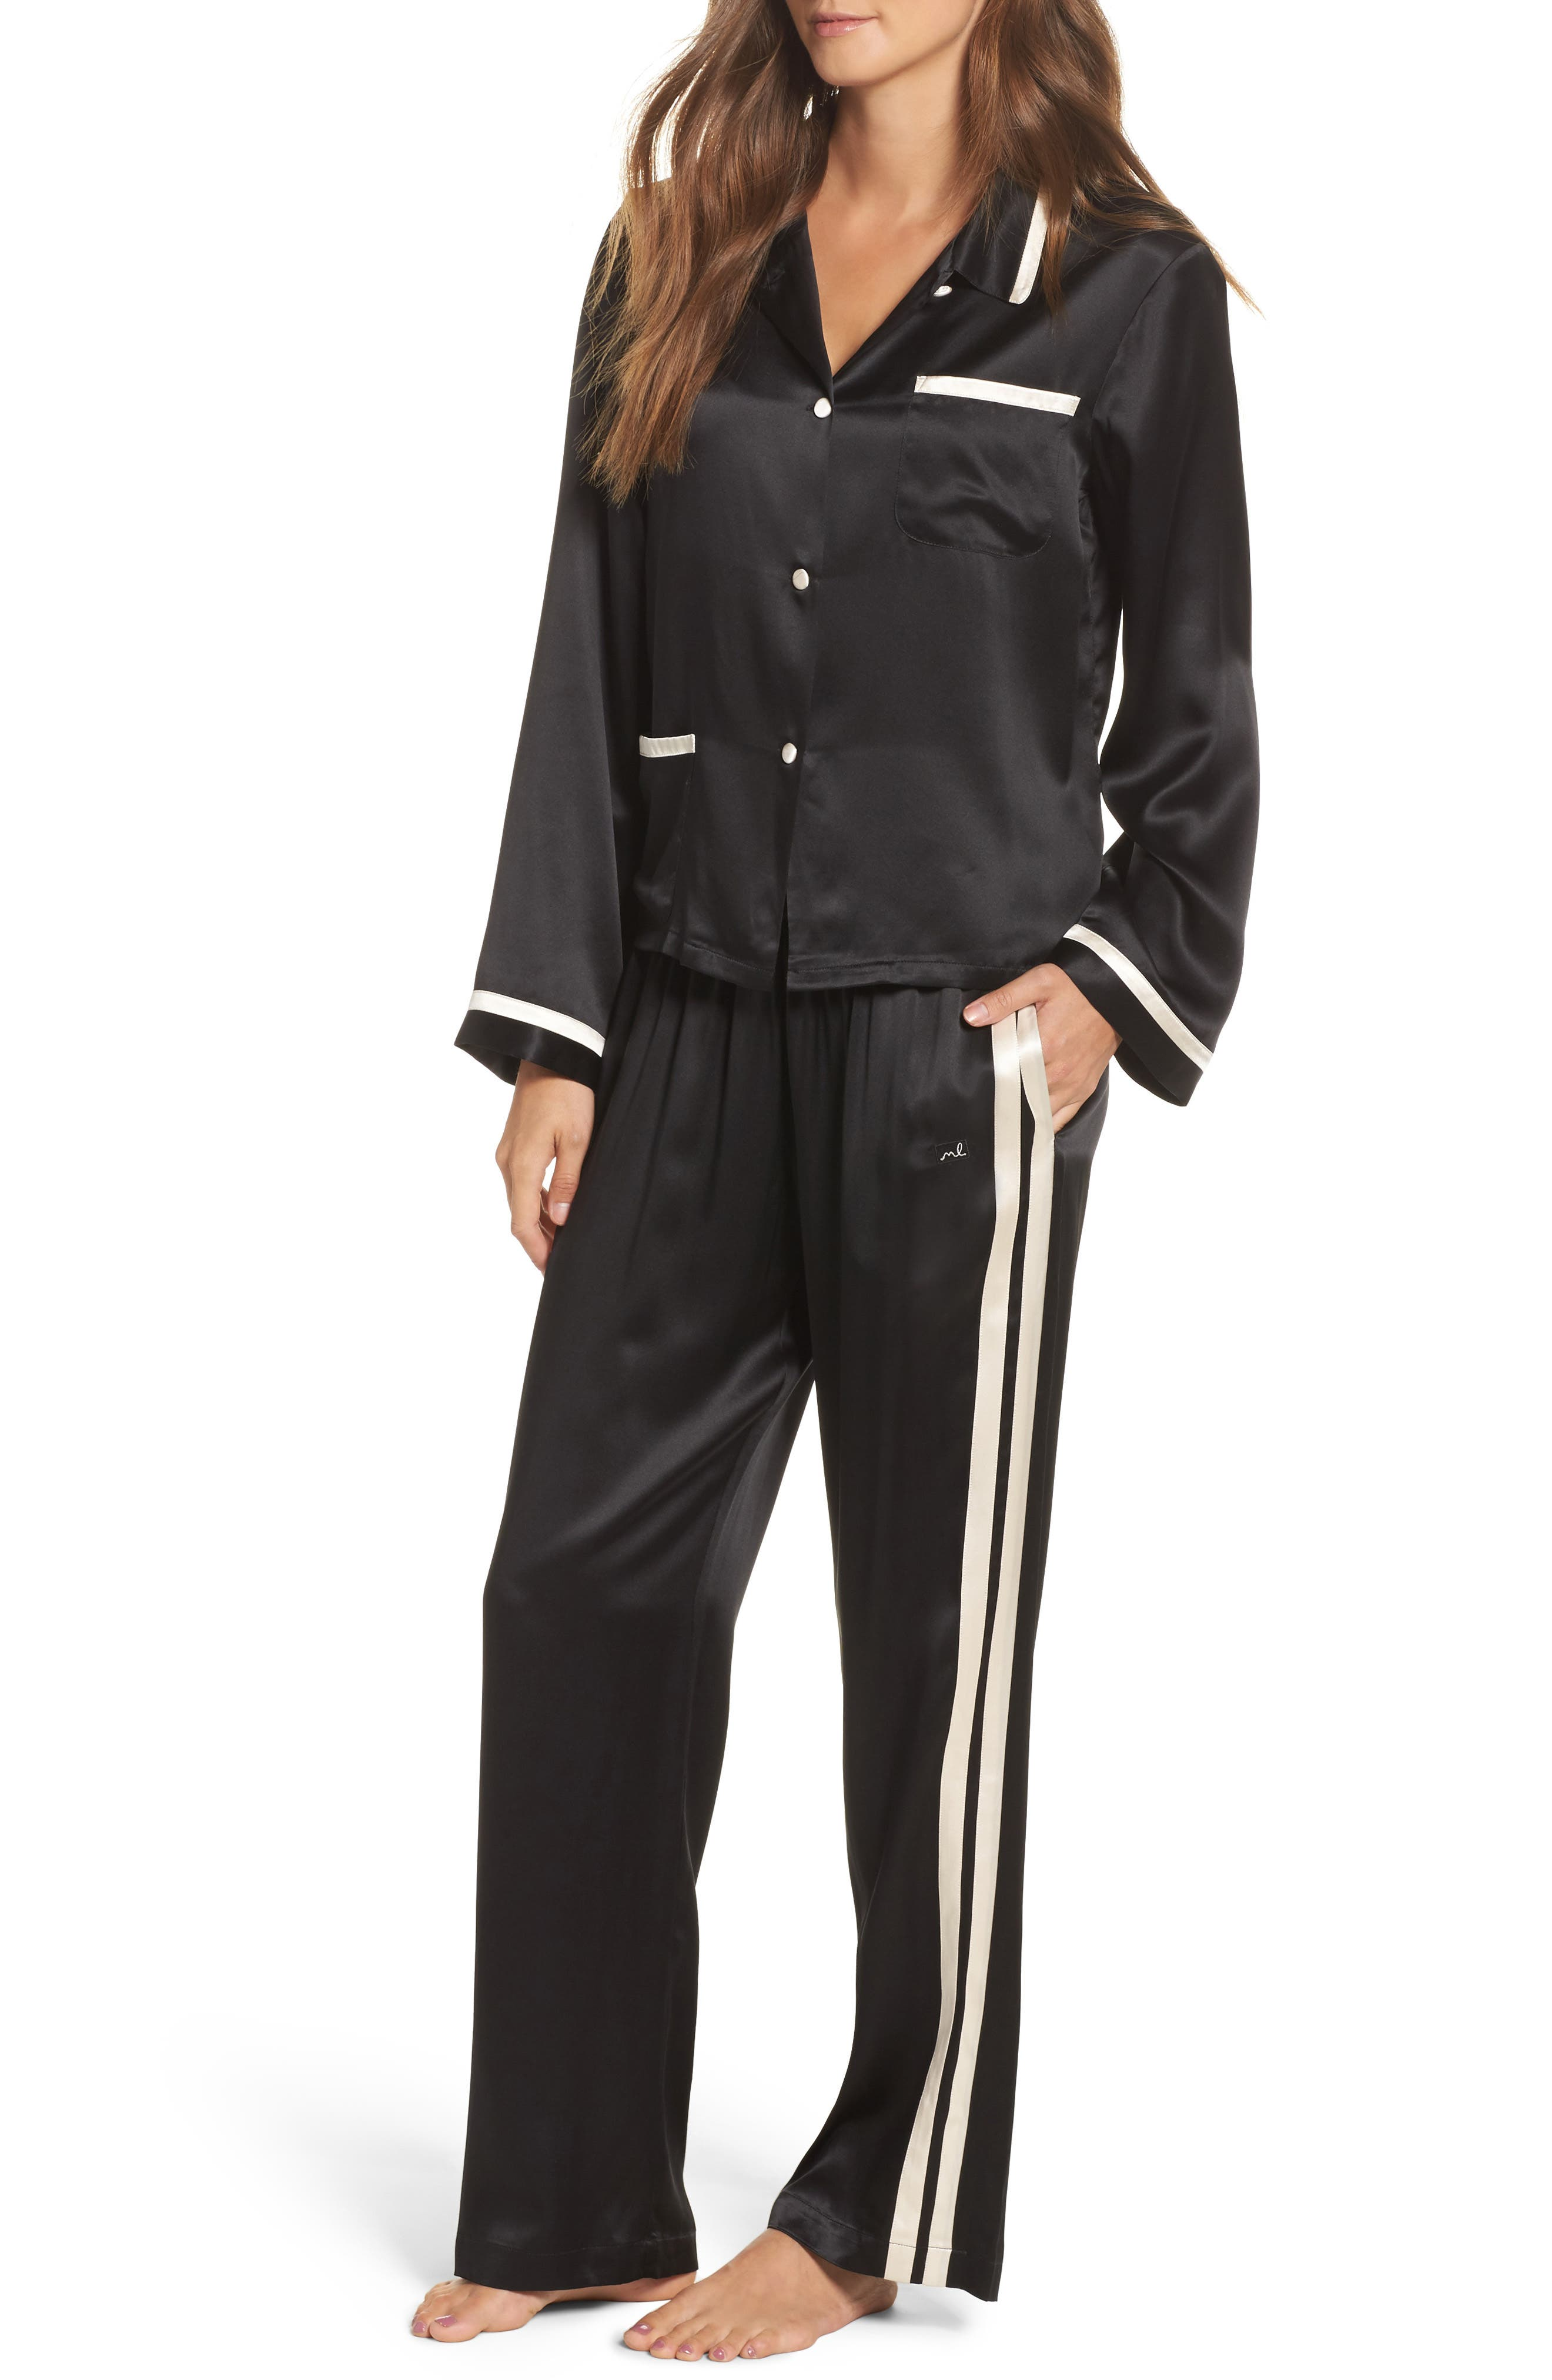 Ruthie Silk Charmeuse Pajama Top,                             Alternate thumbnail 5, color,                             Noir/ Vanilla